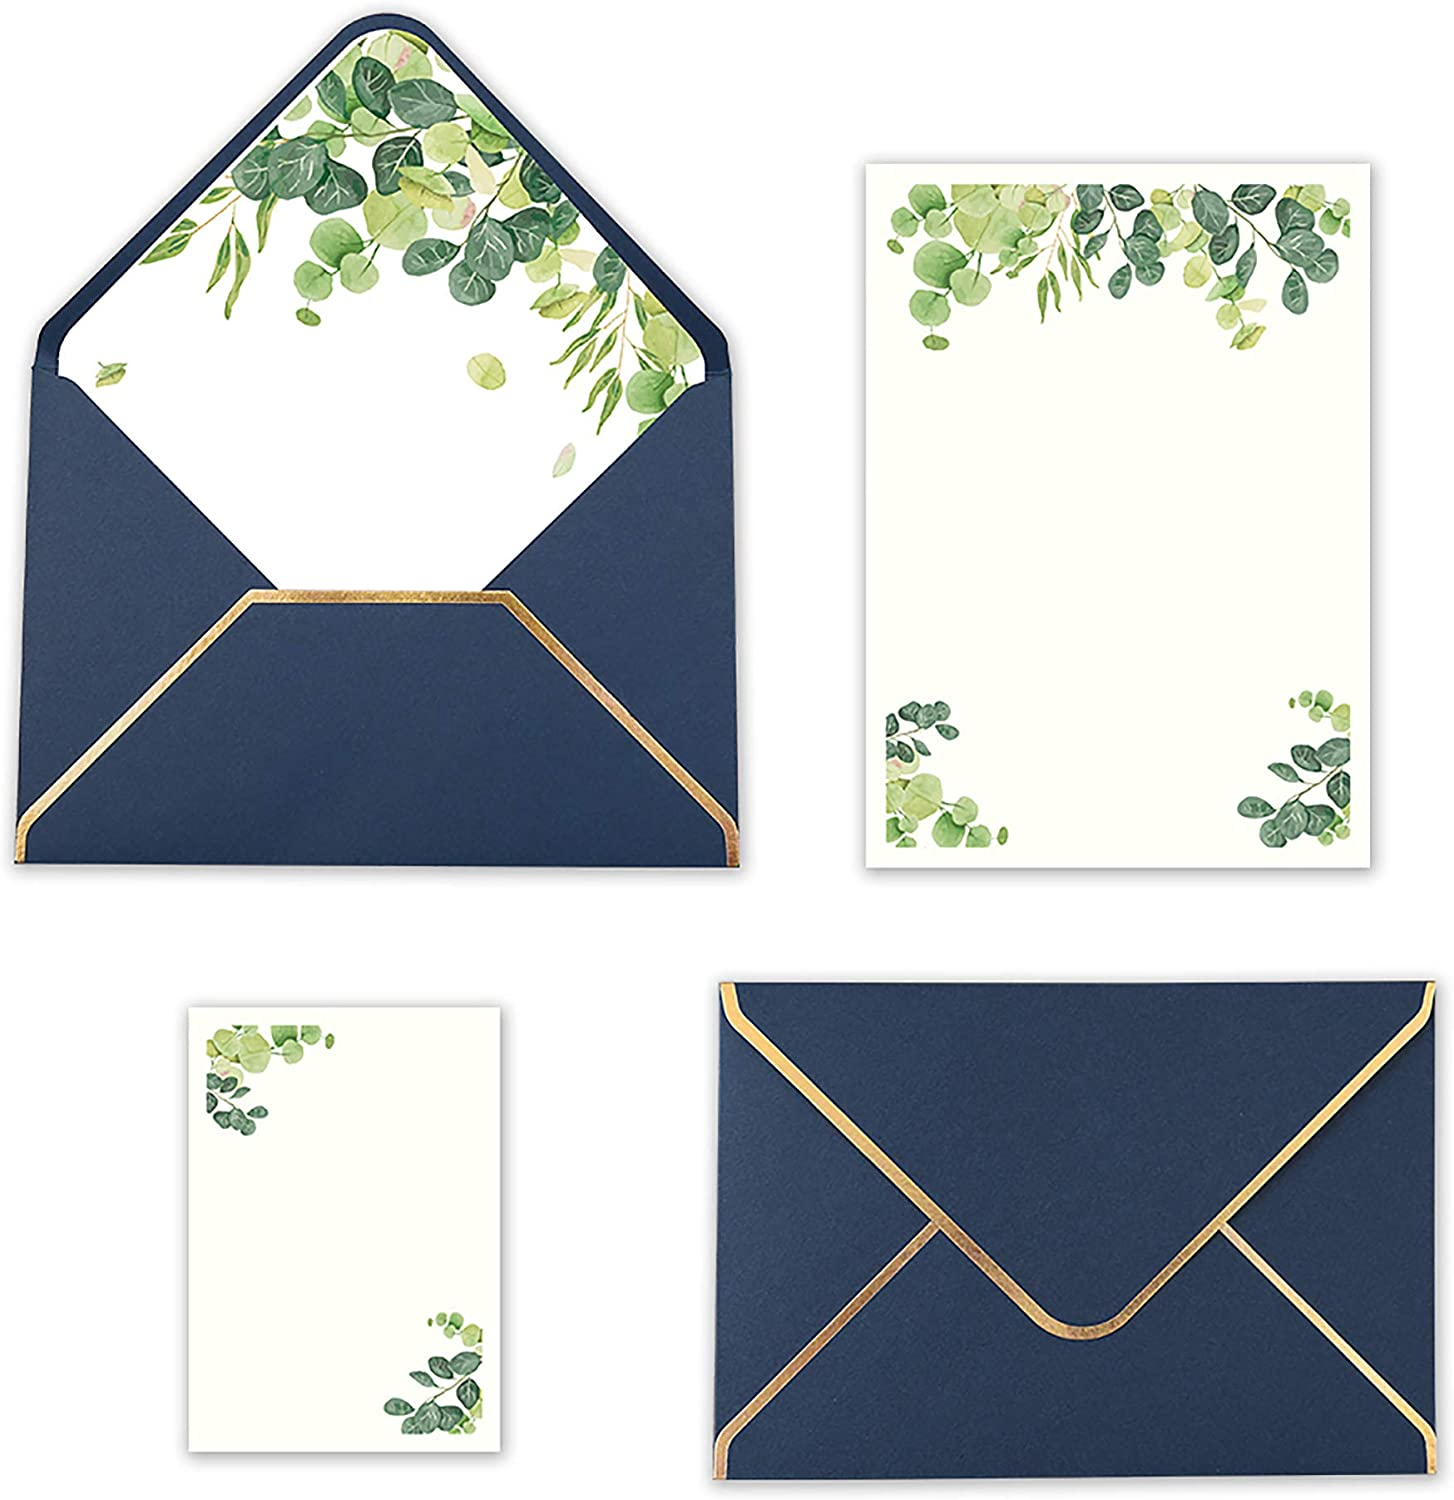 Doris Home 25pcs Blue Invitations Cards with Eucalyptus leaves Printed Inner Sheets and Envelope with with Gold Border for Wedding,Engagement Invite (Navy Blue, Blank with flower)